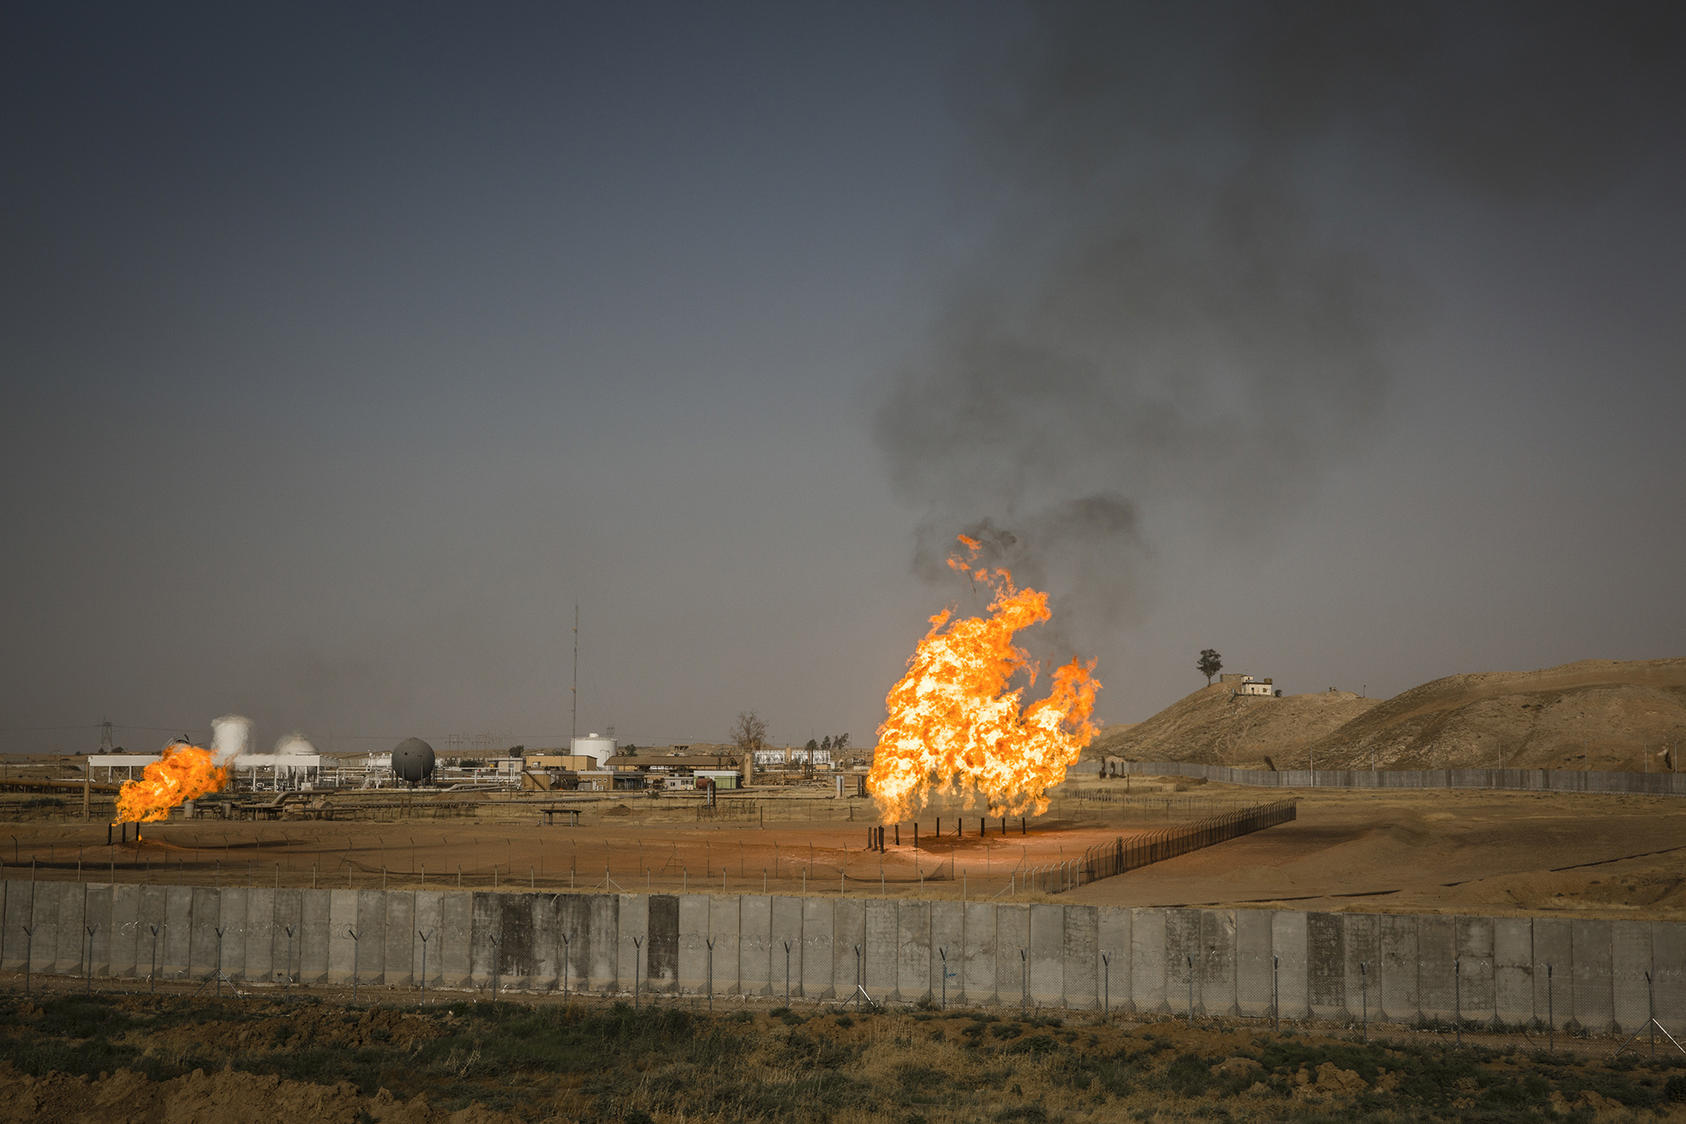 Gas flares at an oil field in Kurdish-controlled territory near Kirkuk, Iraq, Oct. 2, 2017. Kurds voted overwhelmingly for independence in a referendum in September that drew threats of retaliation from the Iraqi authorities, but since then, the Kurds have taken no steps to actually declare independence, and Baghdad and its allies have done nothing to make good on their threats of intervention. (Ivor Prickett/The New York Times)